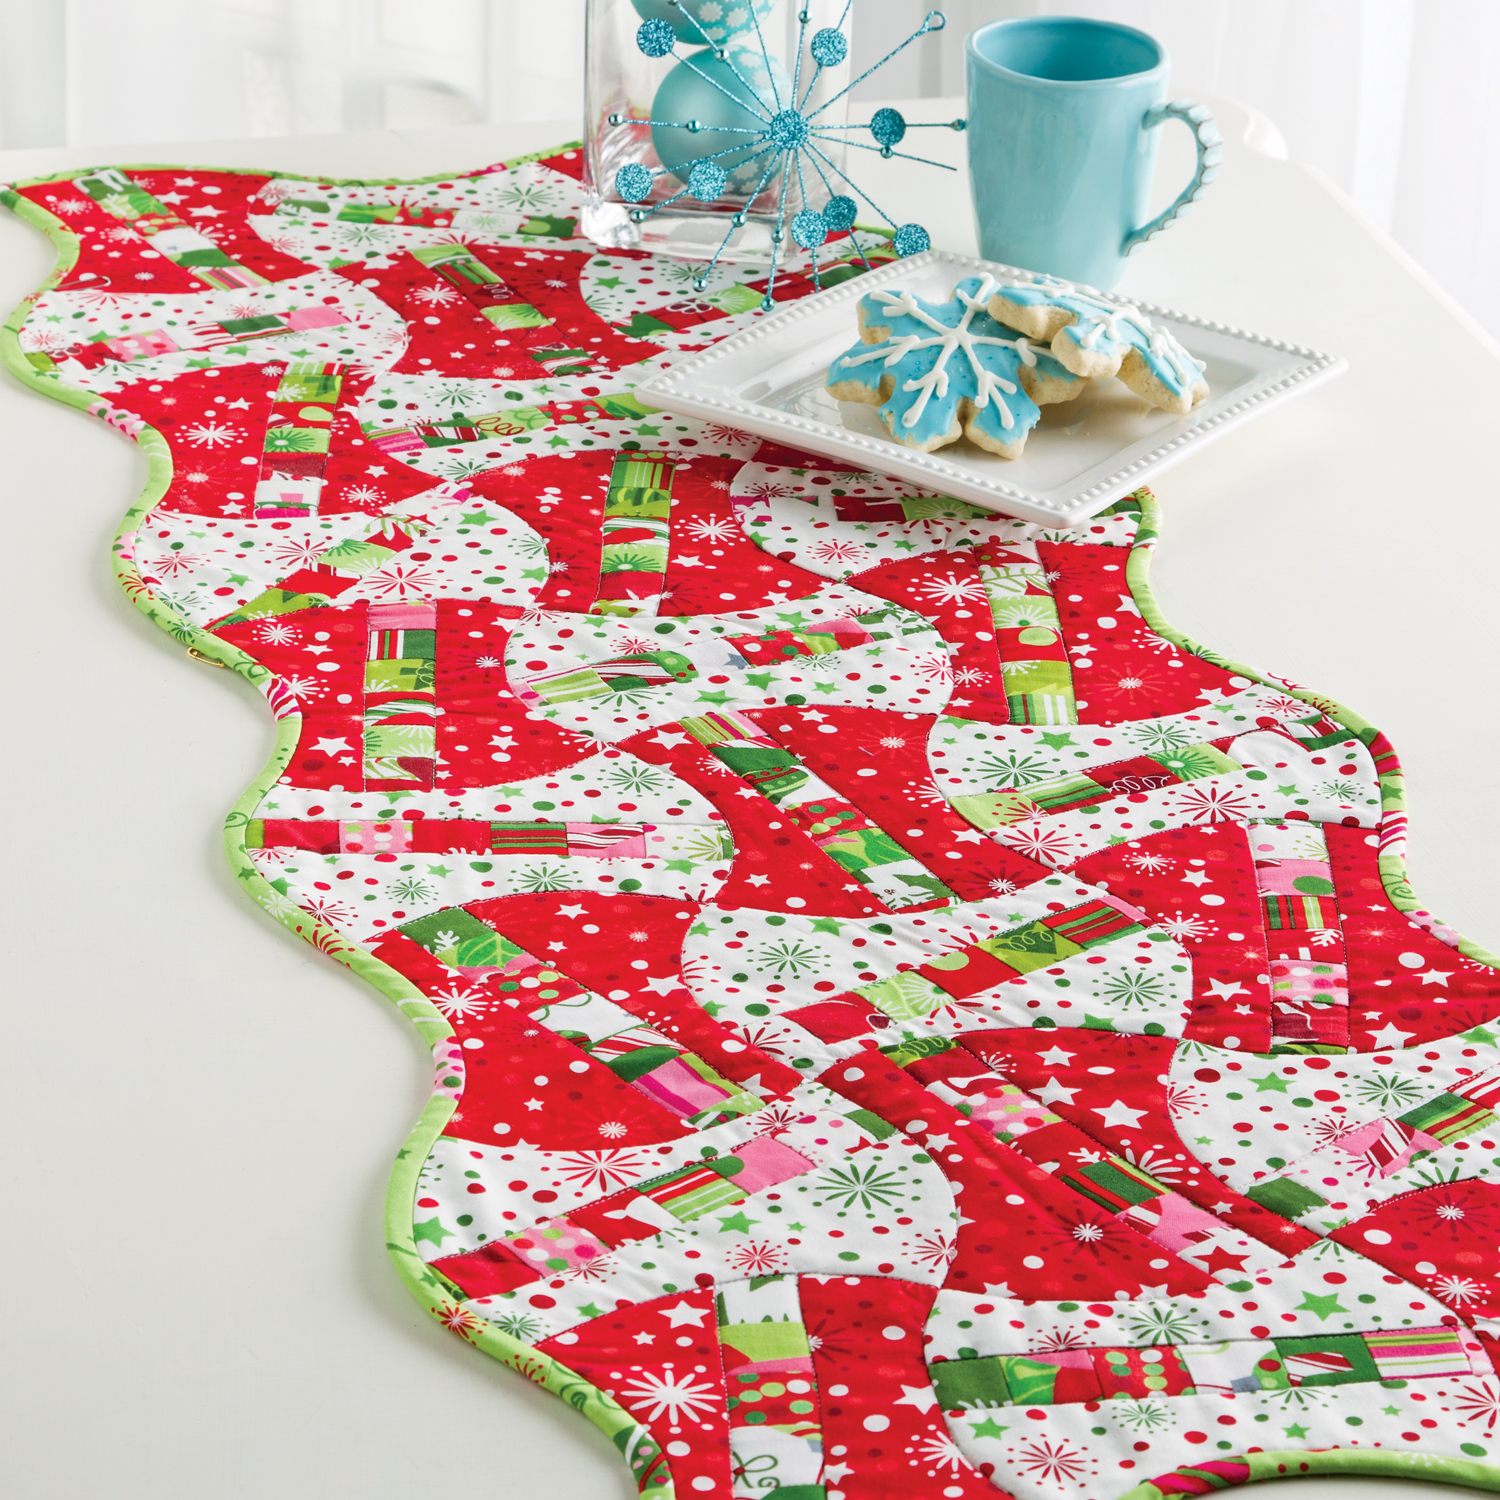 christmas candy apples table runner - Christmas Candy Apples